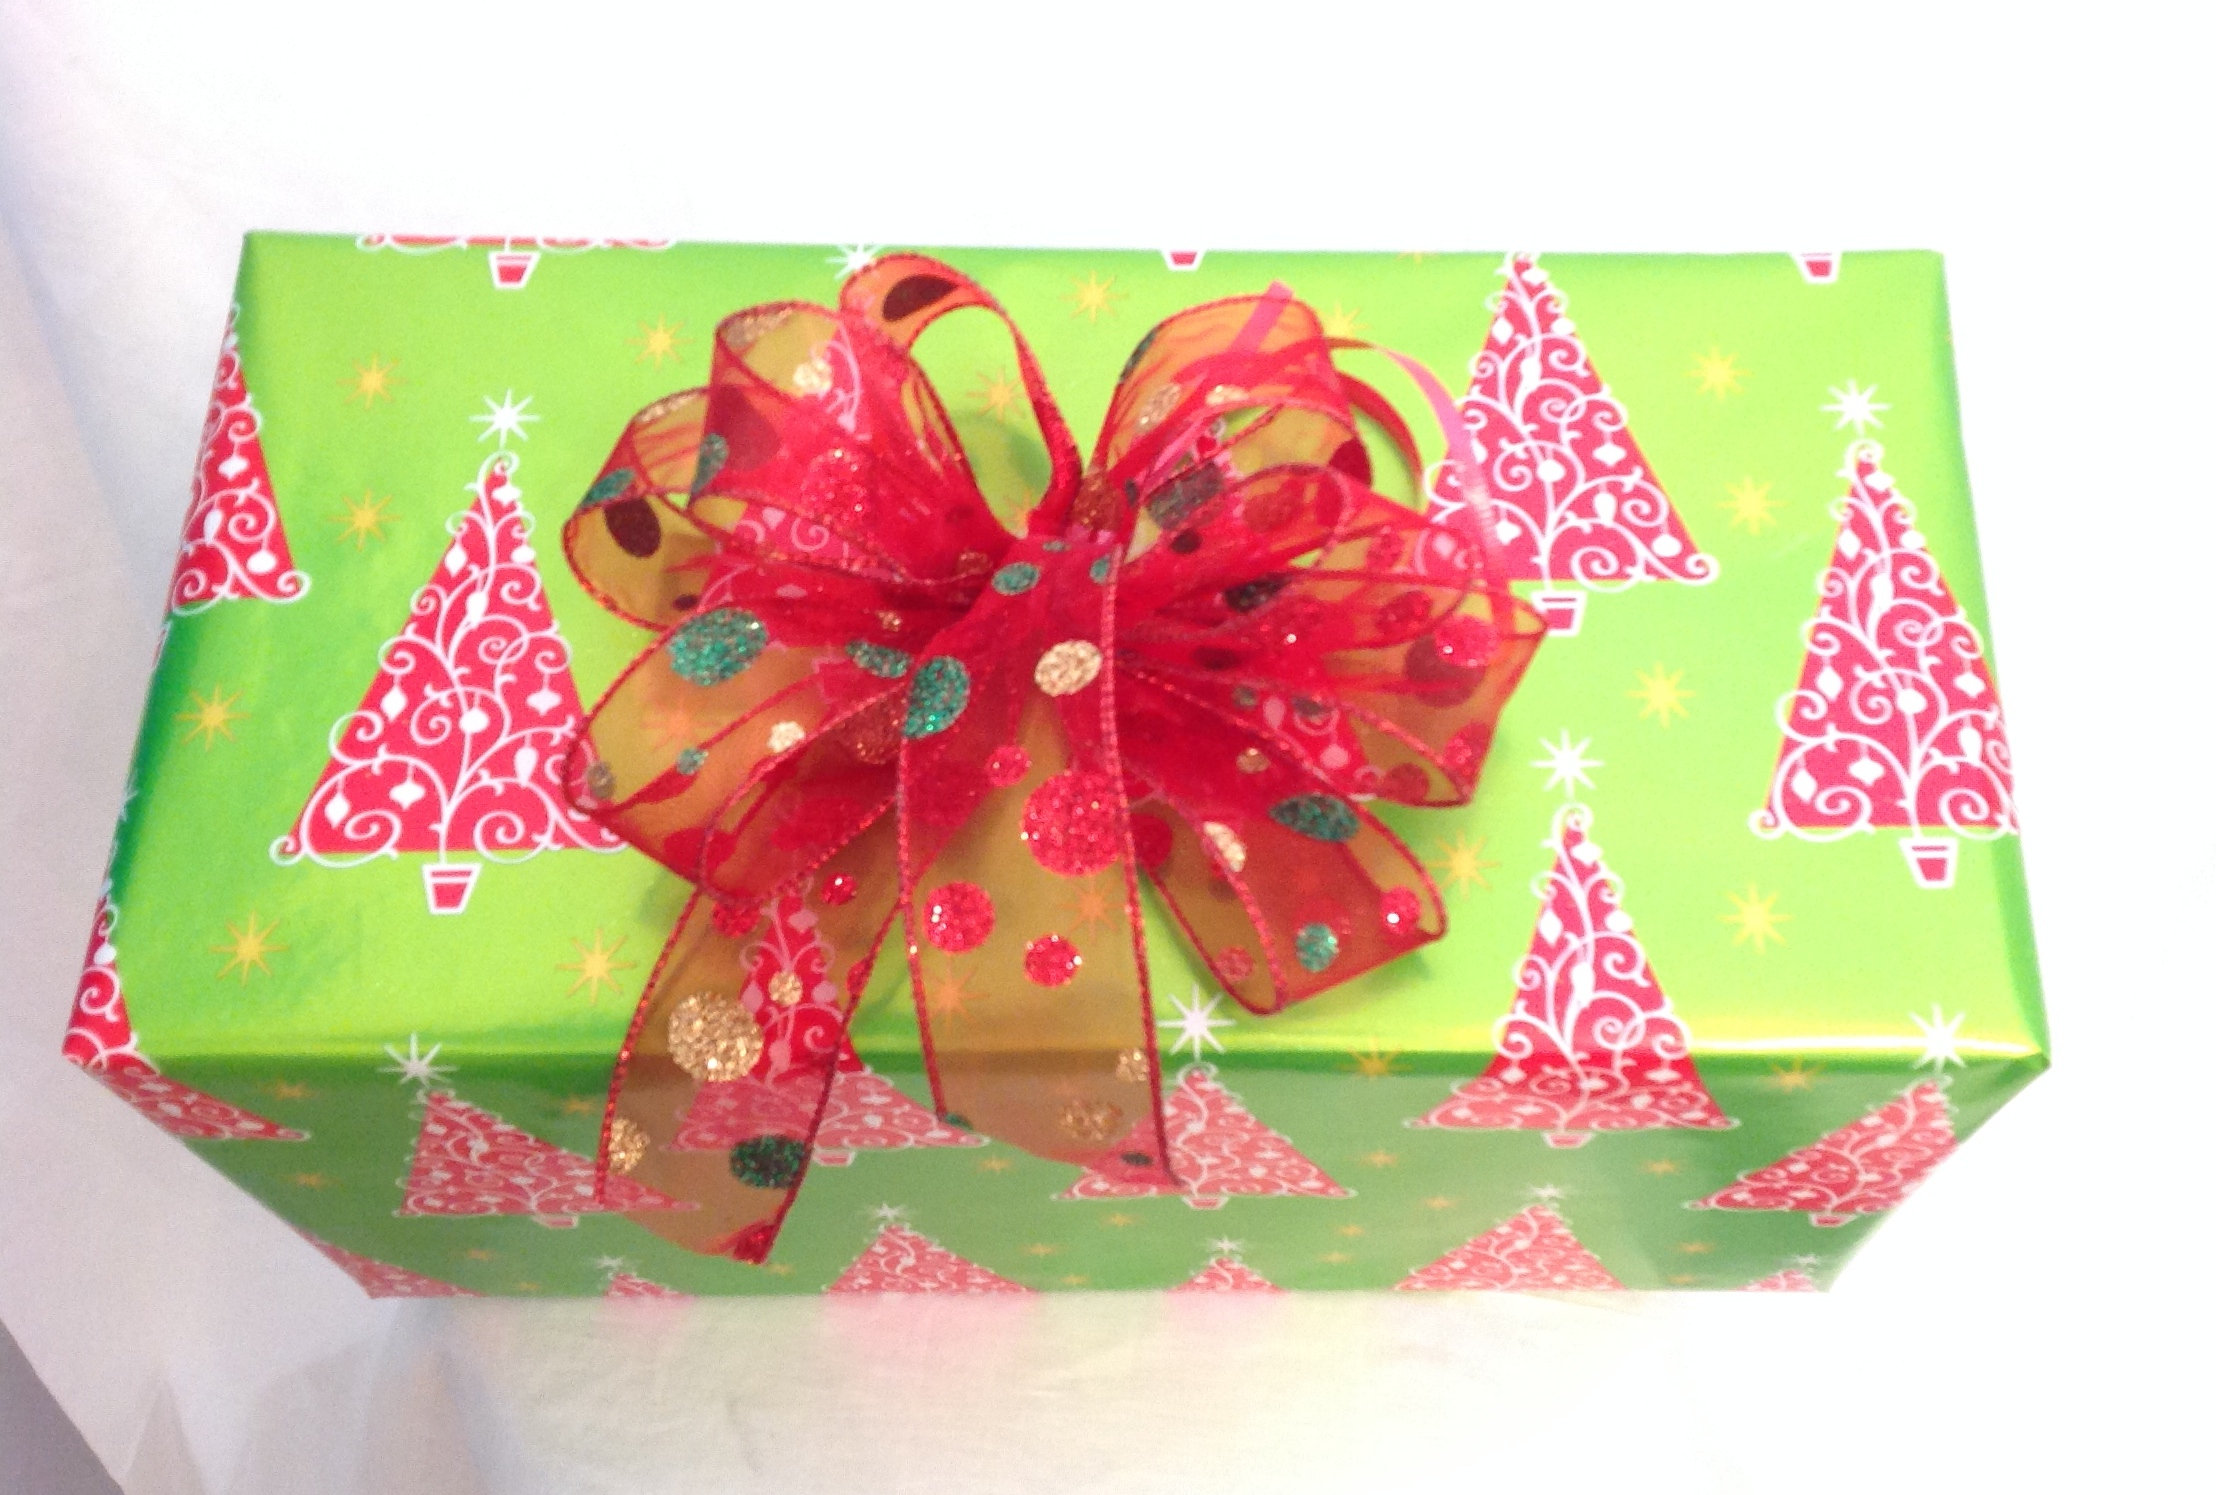 Holiday gift wrapping service by local Las Vegas company.